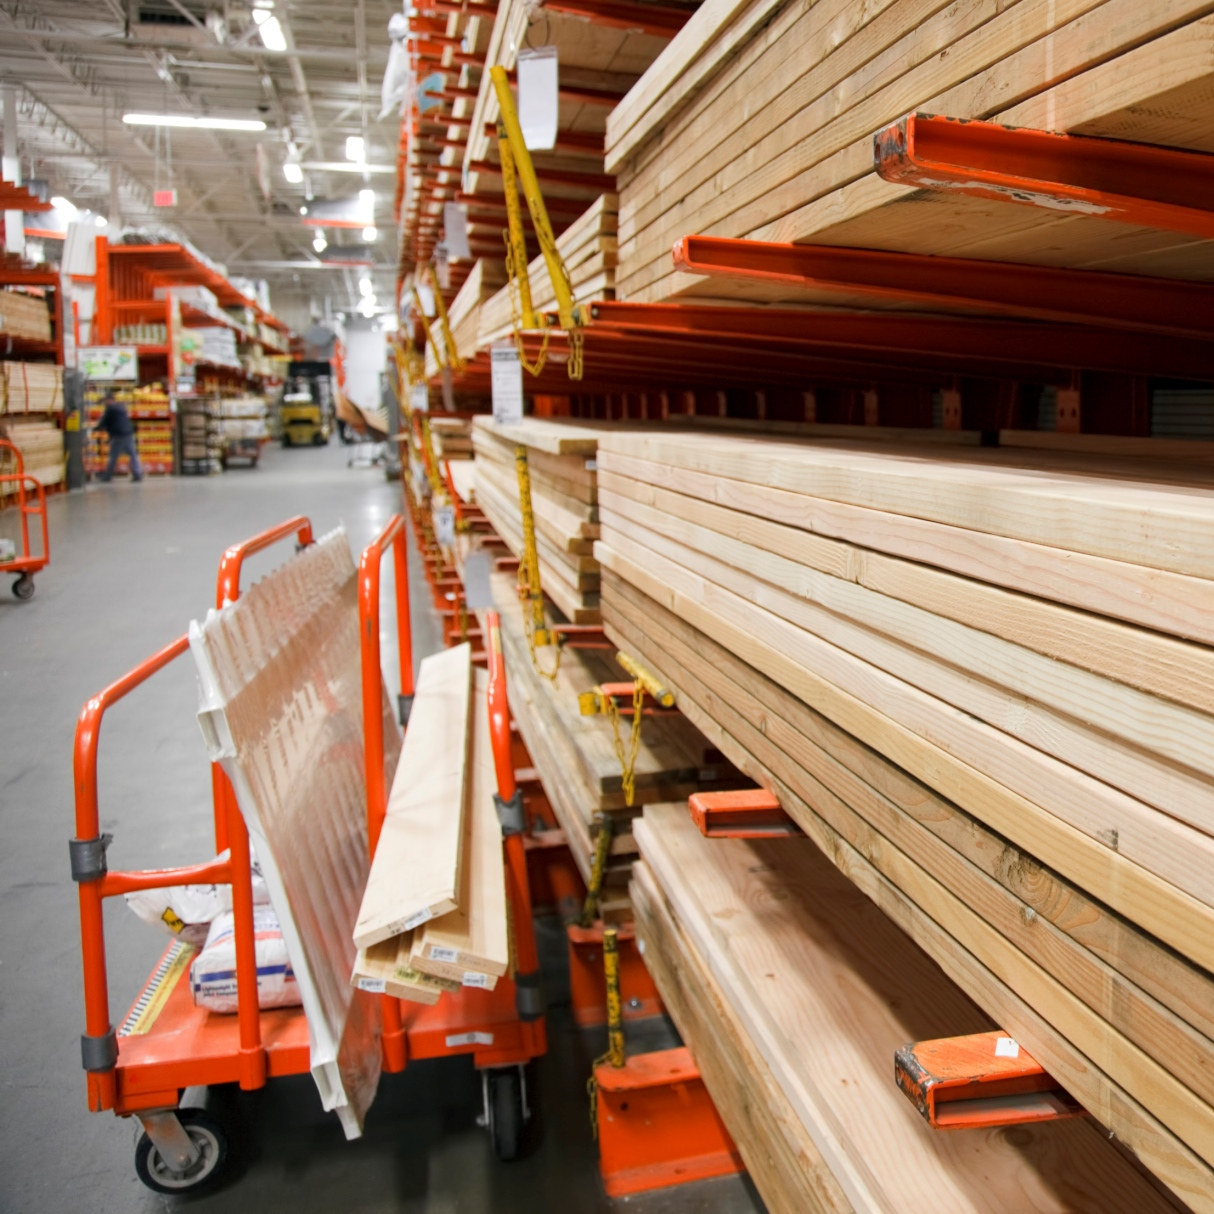 24 7 Wall St Blog Archive Home Depot Q3 Earnings Beat